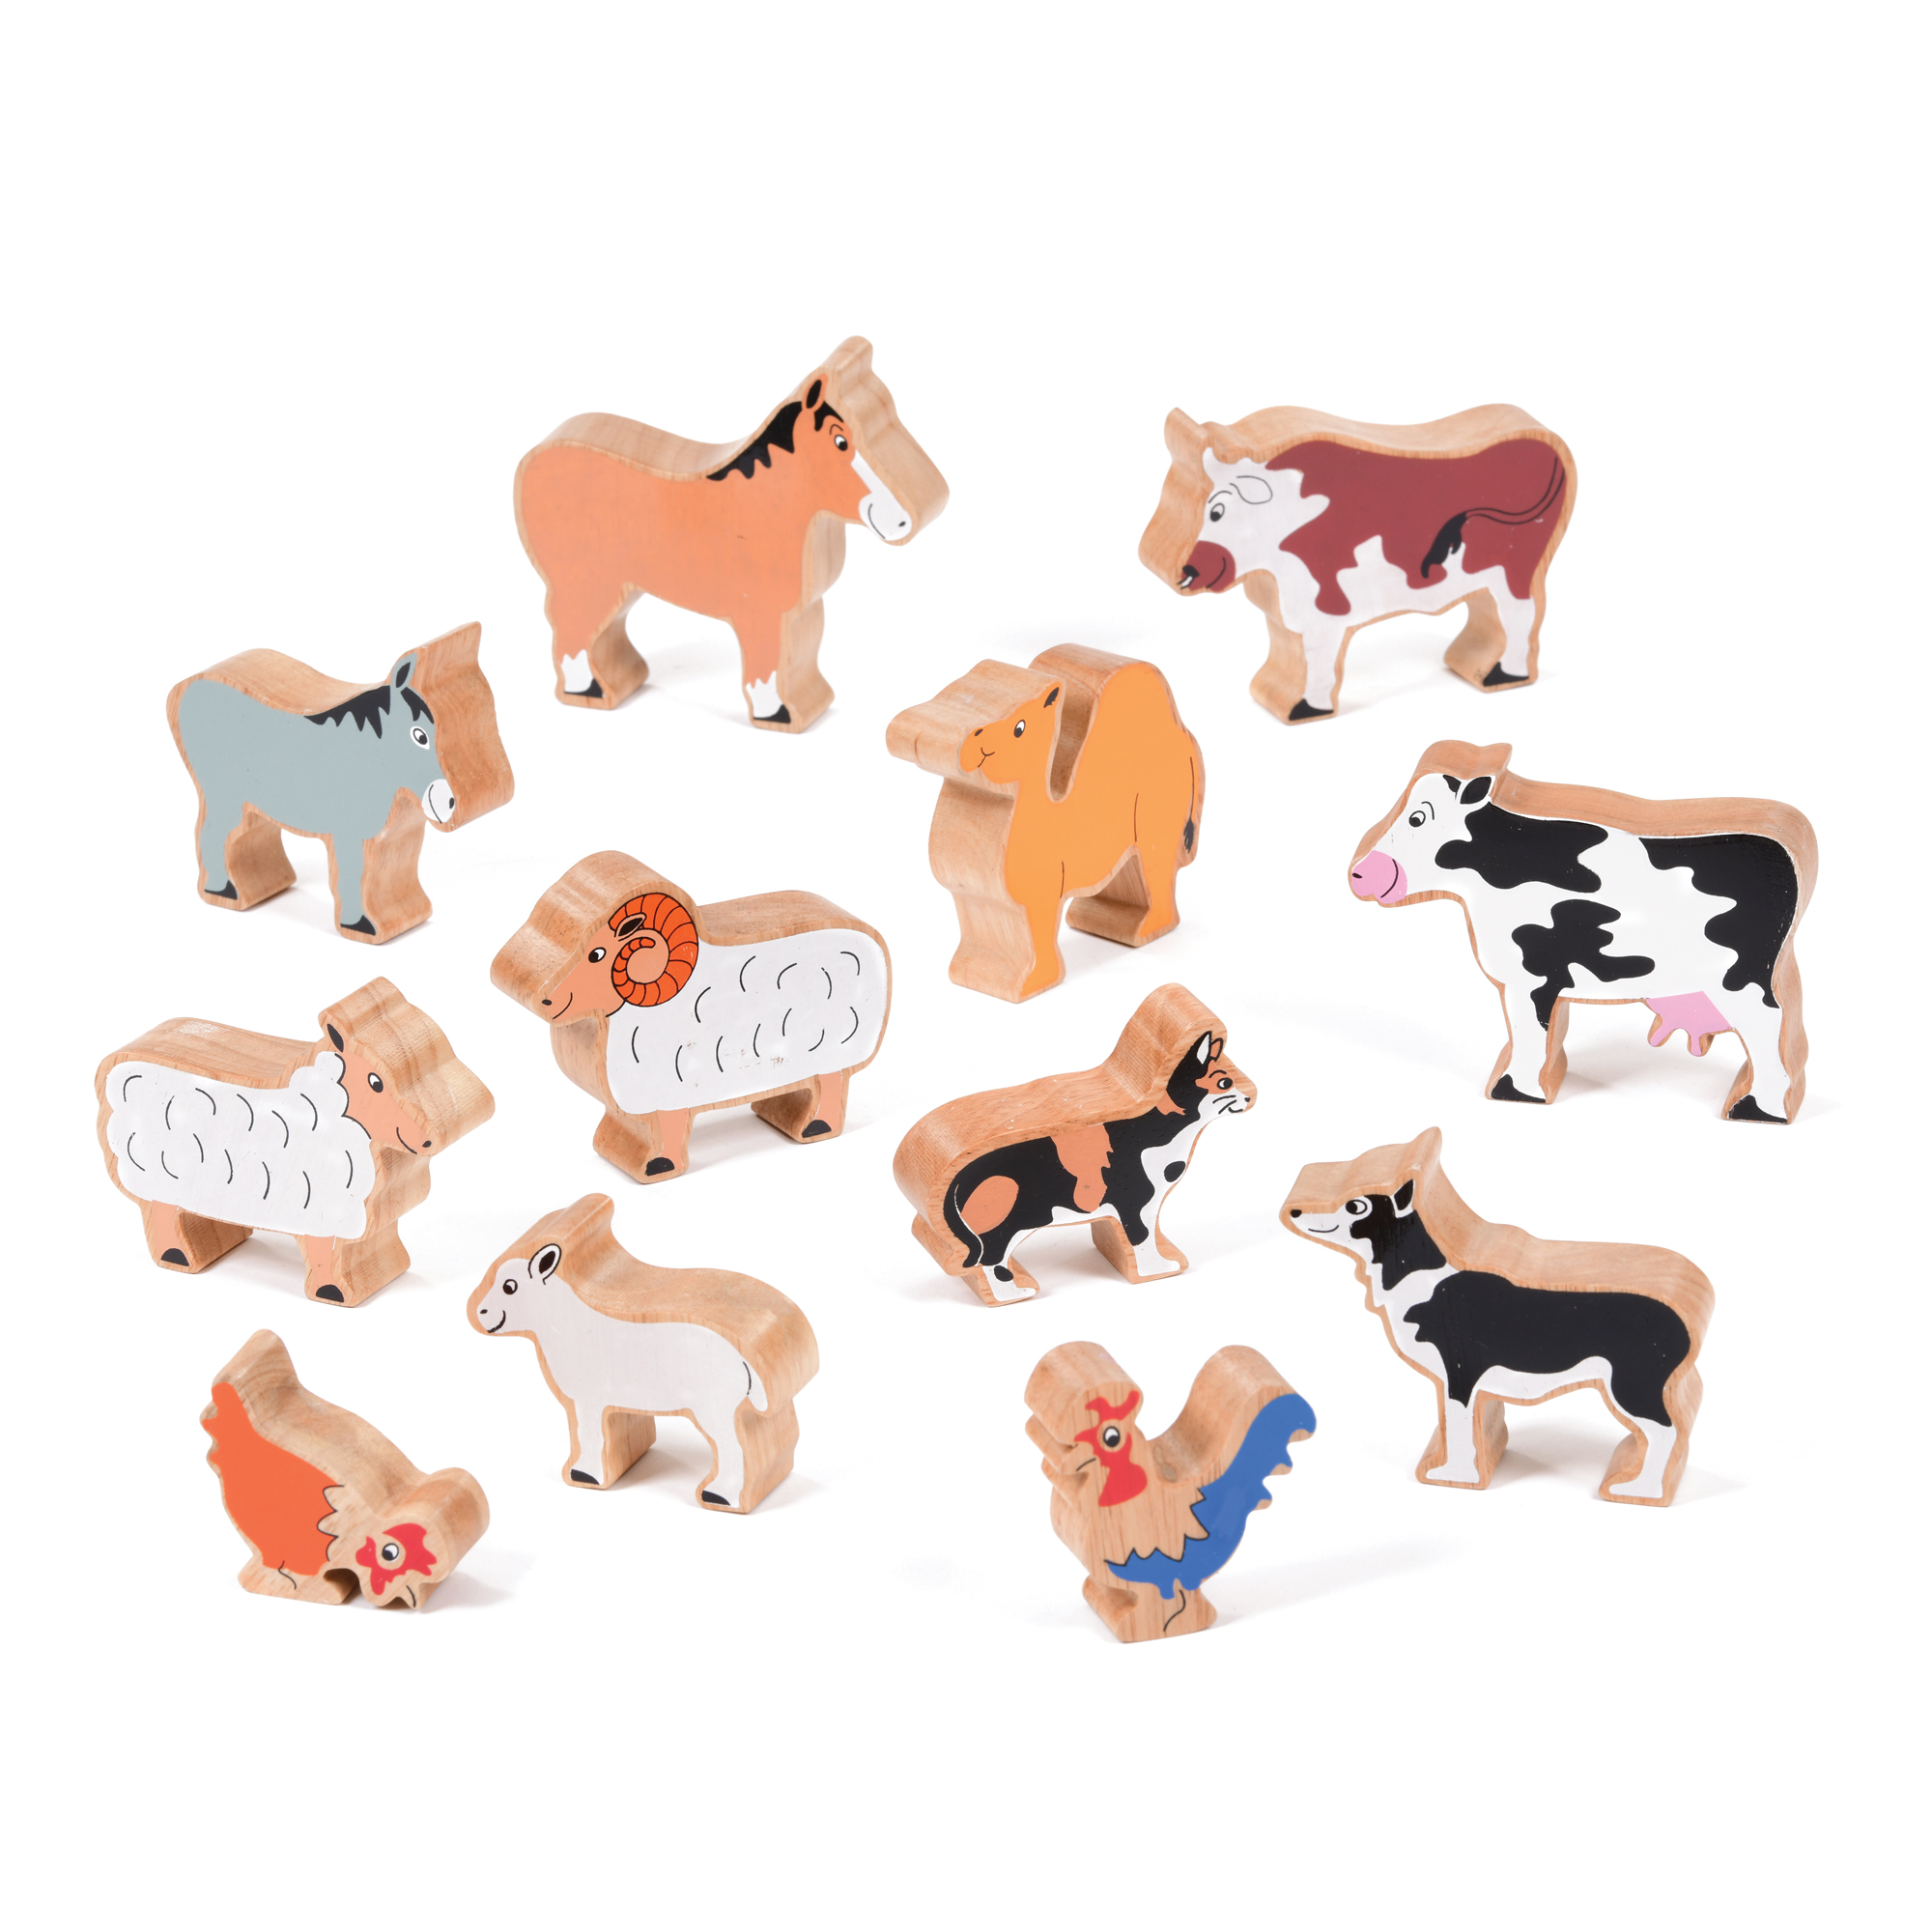 Set of Wooden Nativity Animals